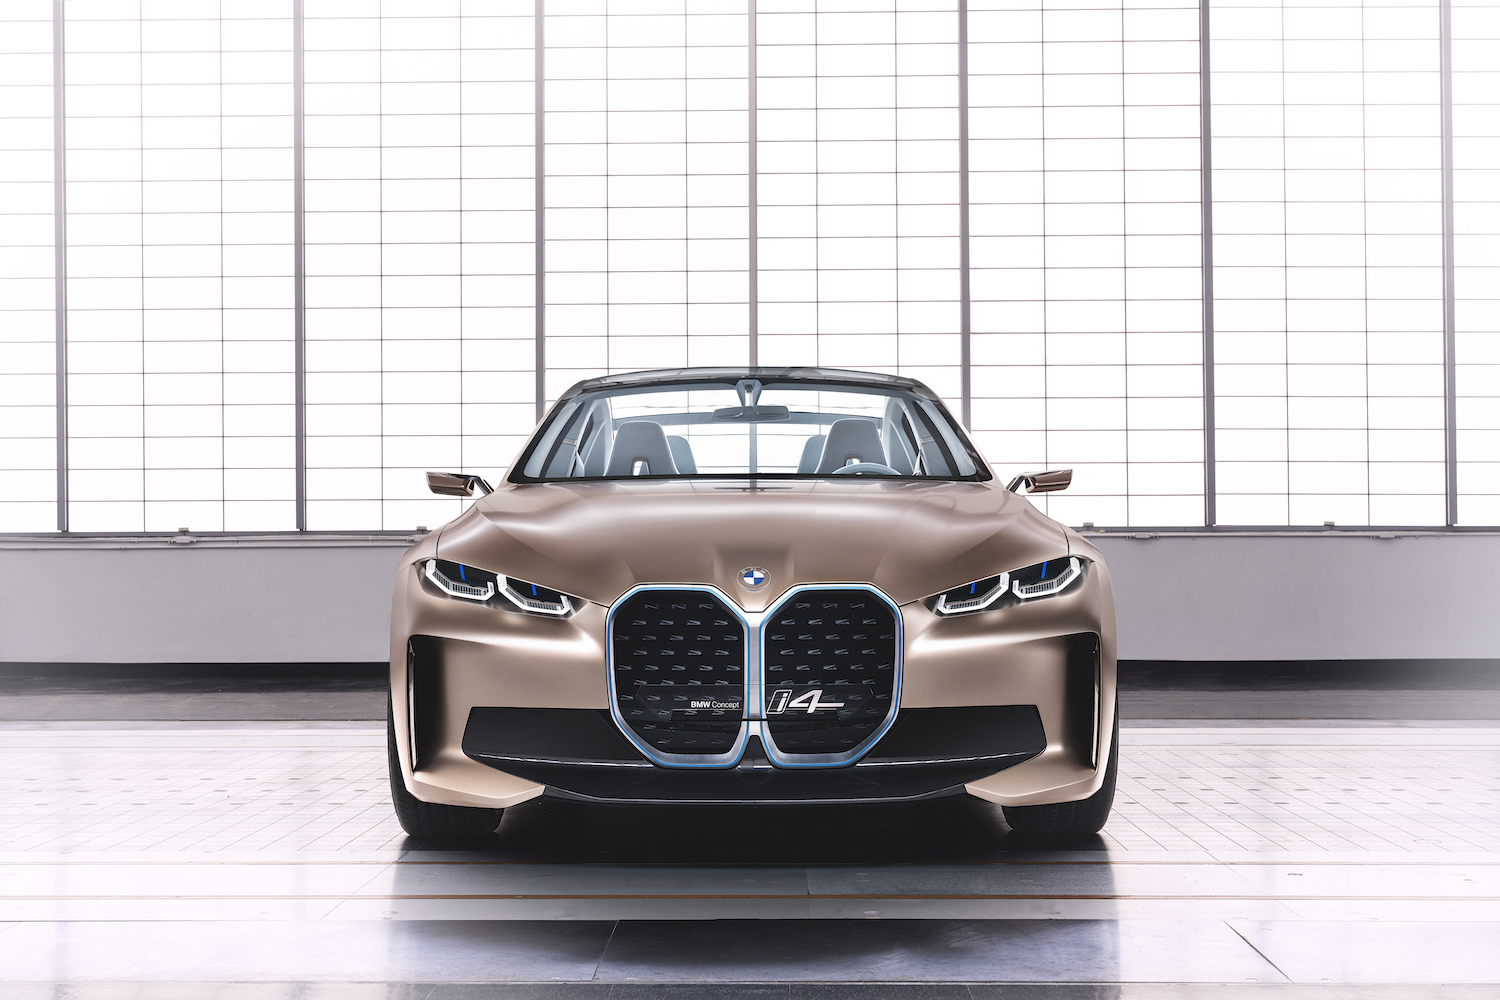 2021 BMW Concept i4 front